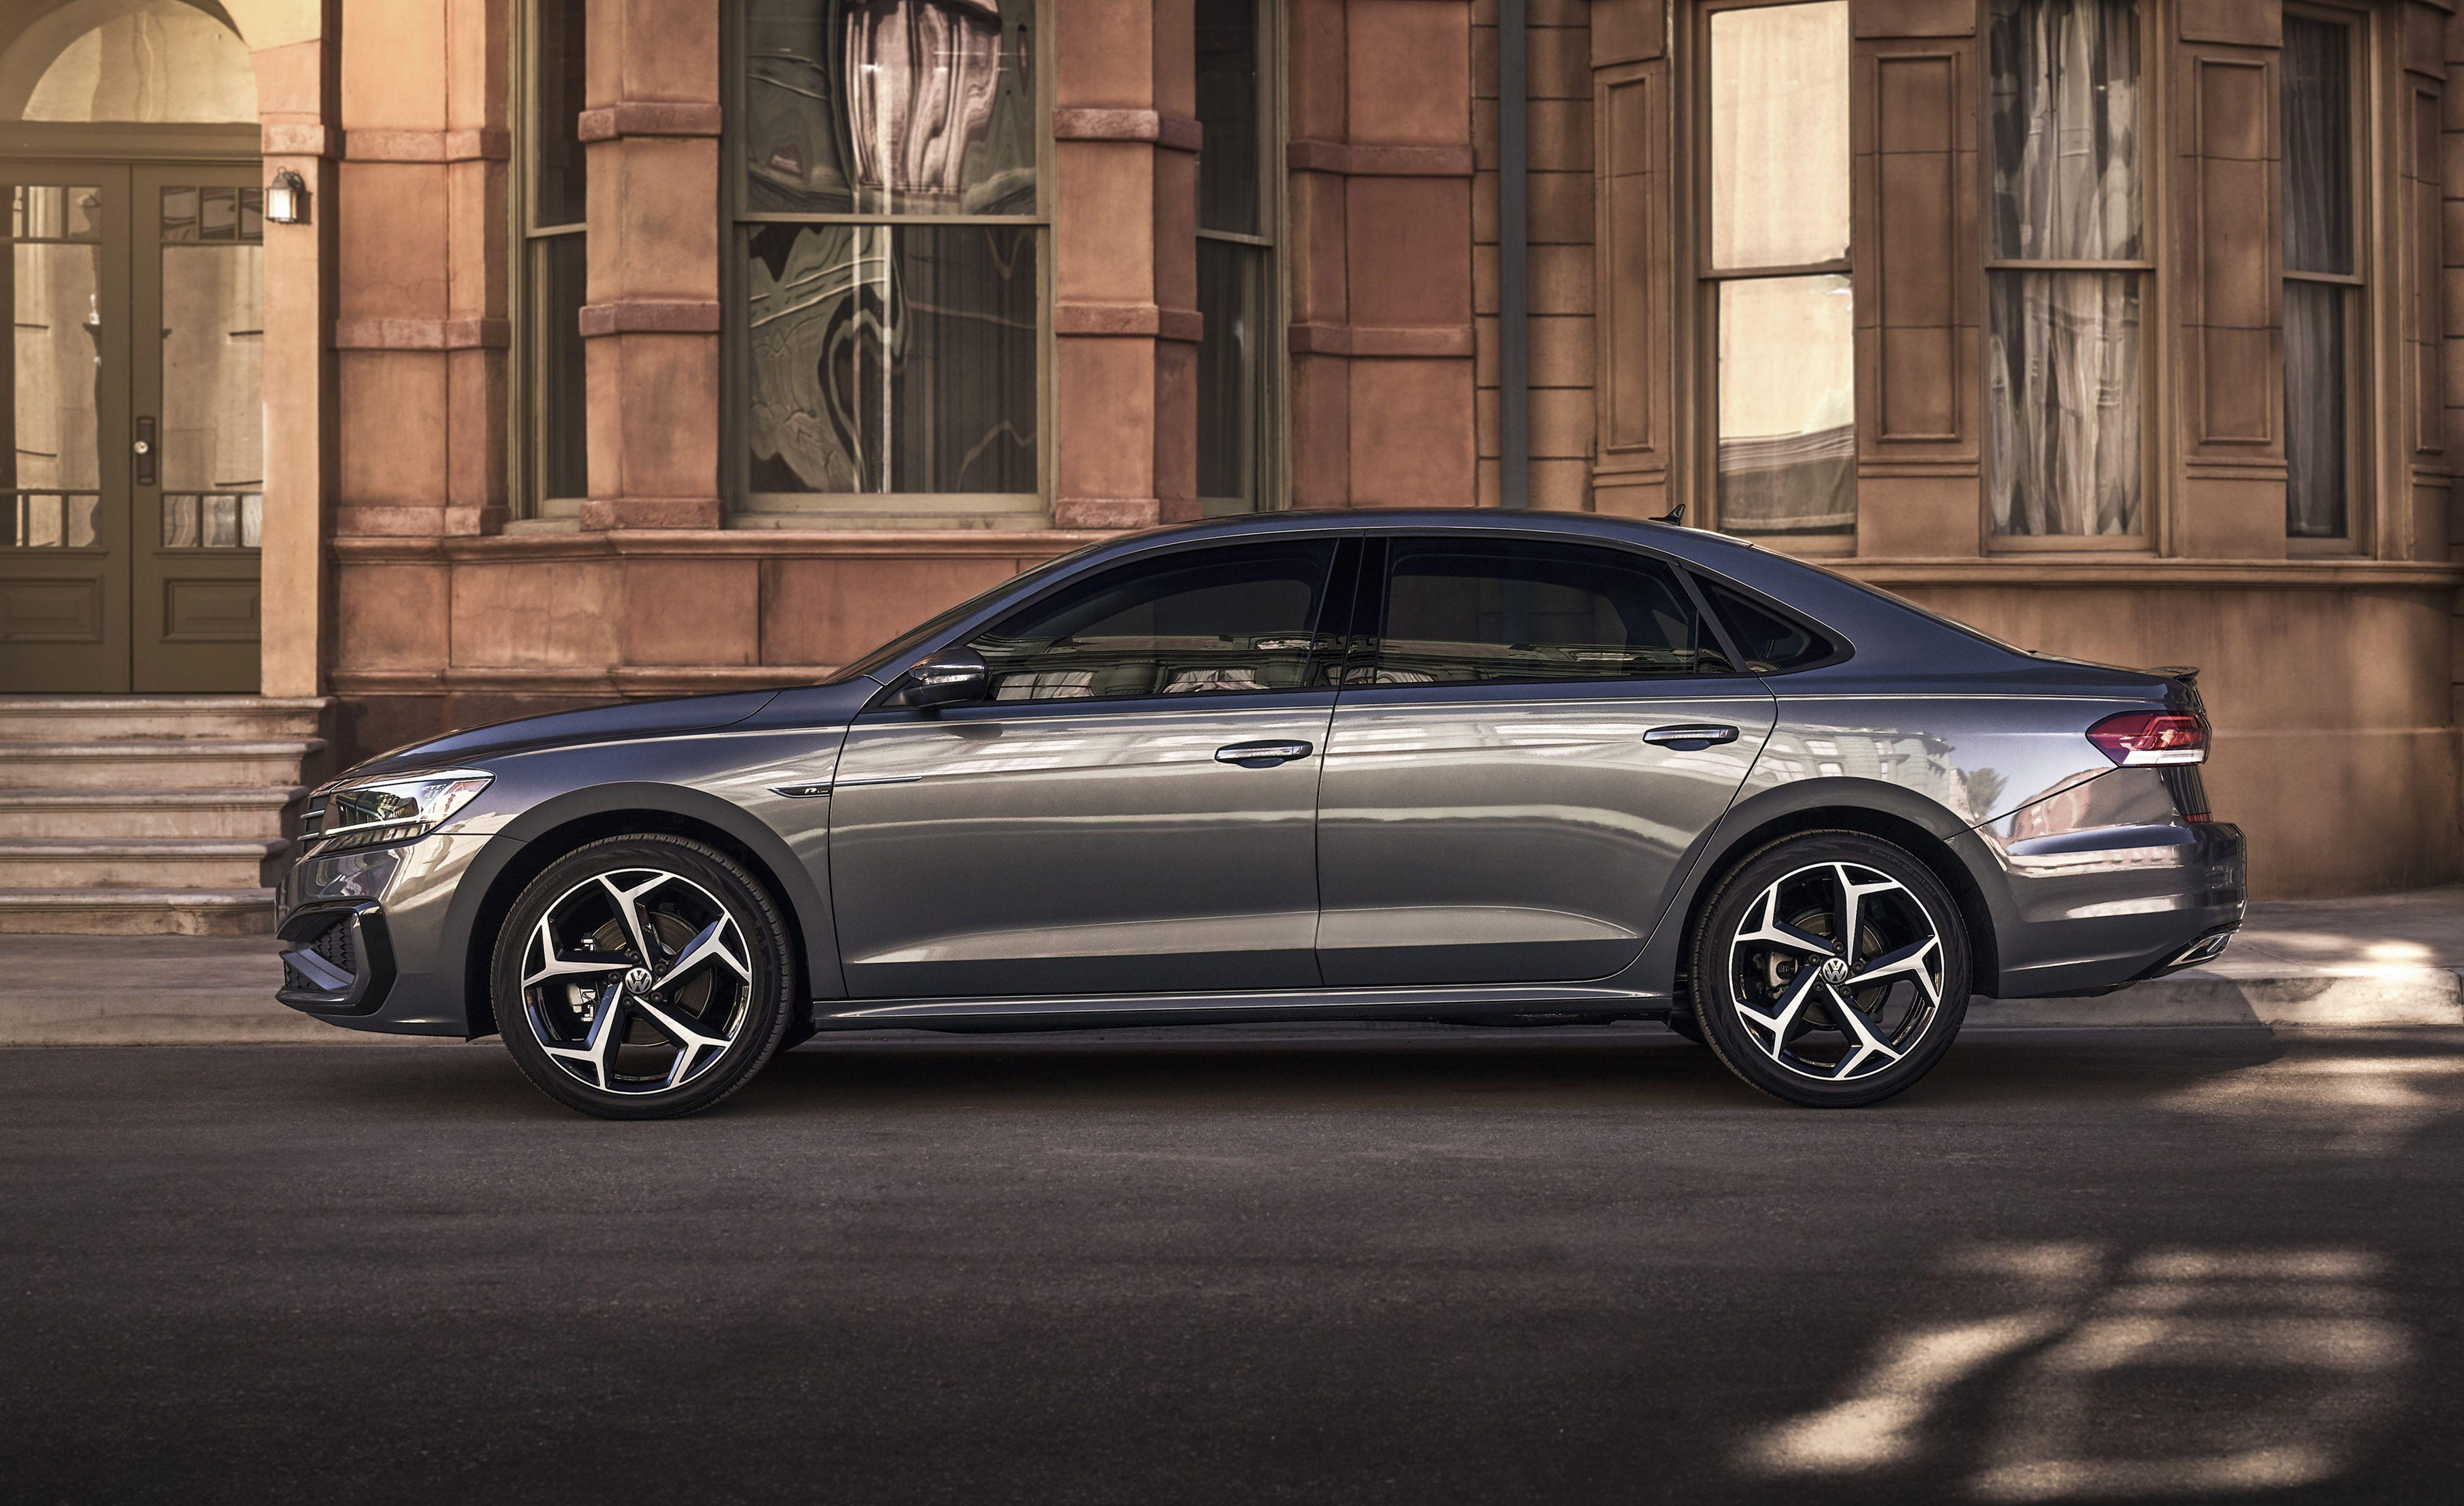 """<p>We'll keep this brief, in keeping with the brevity of the list of changes Volkswagen has made to its mid-size Passat for 2020. As Volkswagen itself puts it, """"While the 2020 Passat retains the underpinnings of the previous model, it has been completely restyled."""" Indeed, wrapped around <a href=""""https://www.caranddriver.com/volkswagen/passat"""" rel=""""nofollow noopener"""" target=""""_blank"""" data-ylk=""""slk:the outgoing Passat"""" class=""""link rapid-noclick-resp"""">the outgoing Passat</a>'s body structure, chassis, engine, and transmission is fresh sheetmetal. Peer through the windows, and you'll notice the interior is slightly newified, too.</p>"""